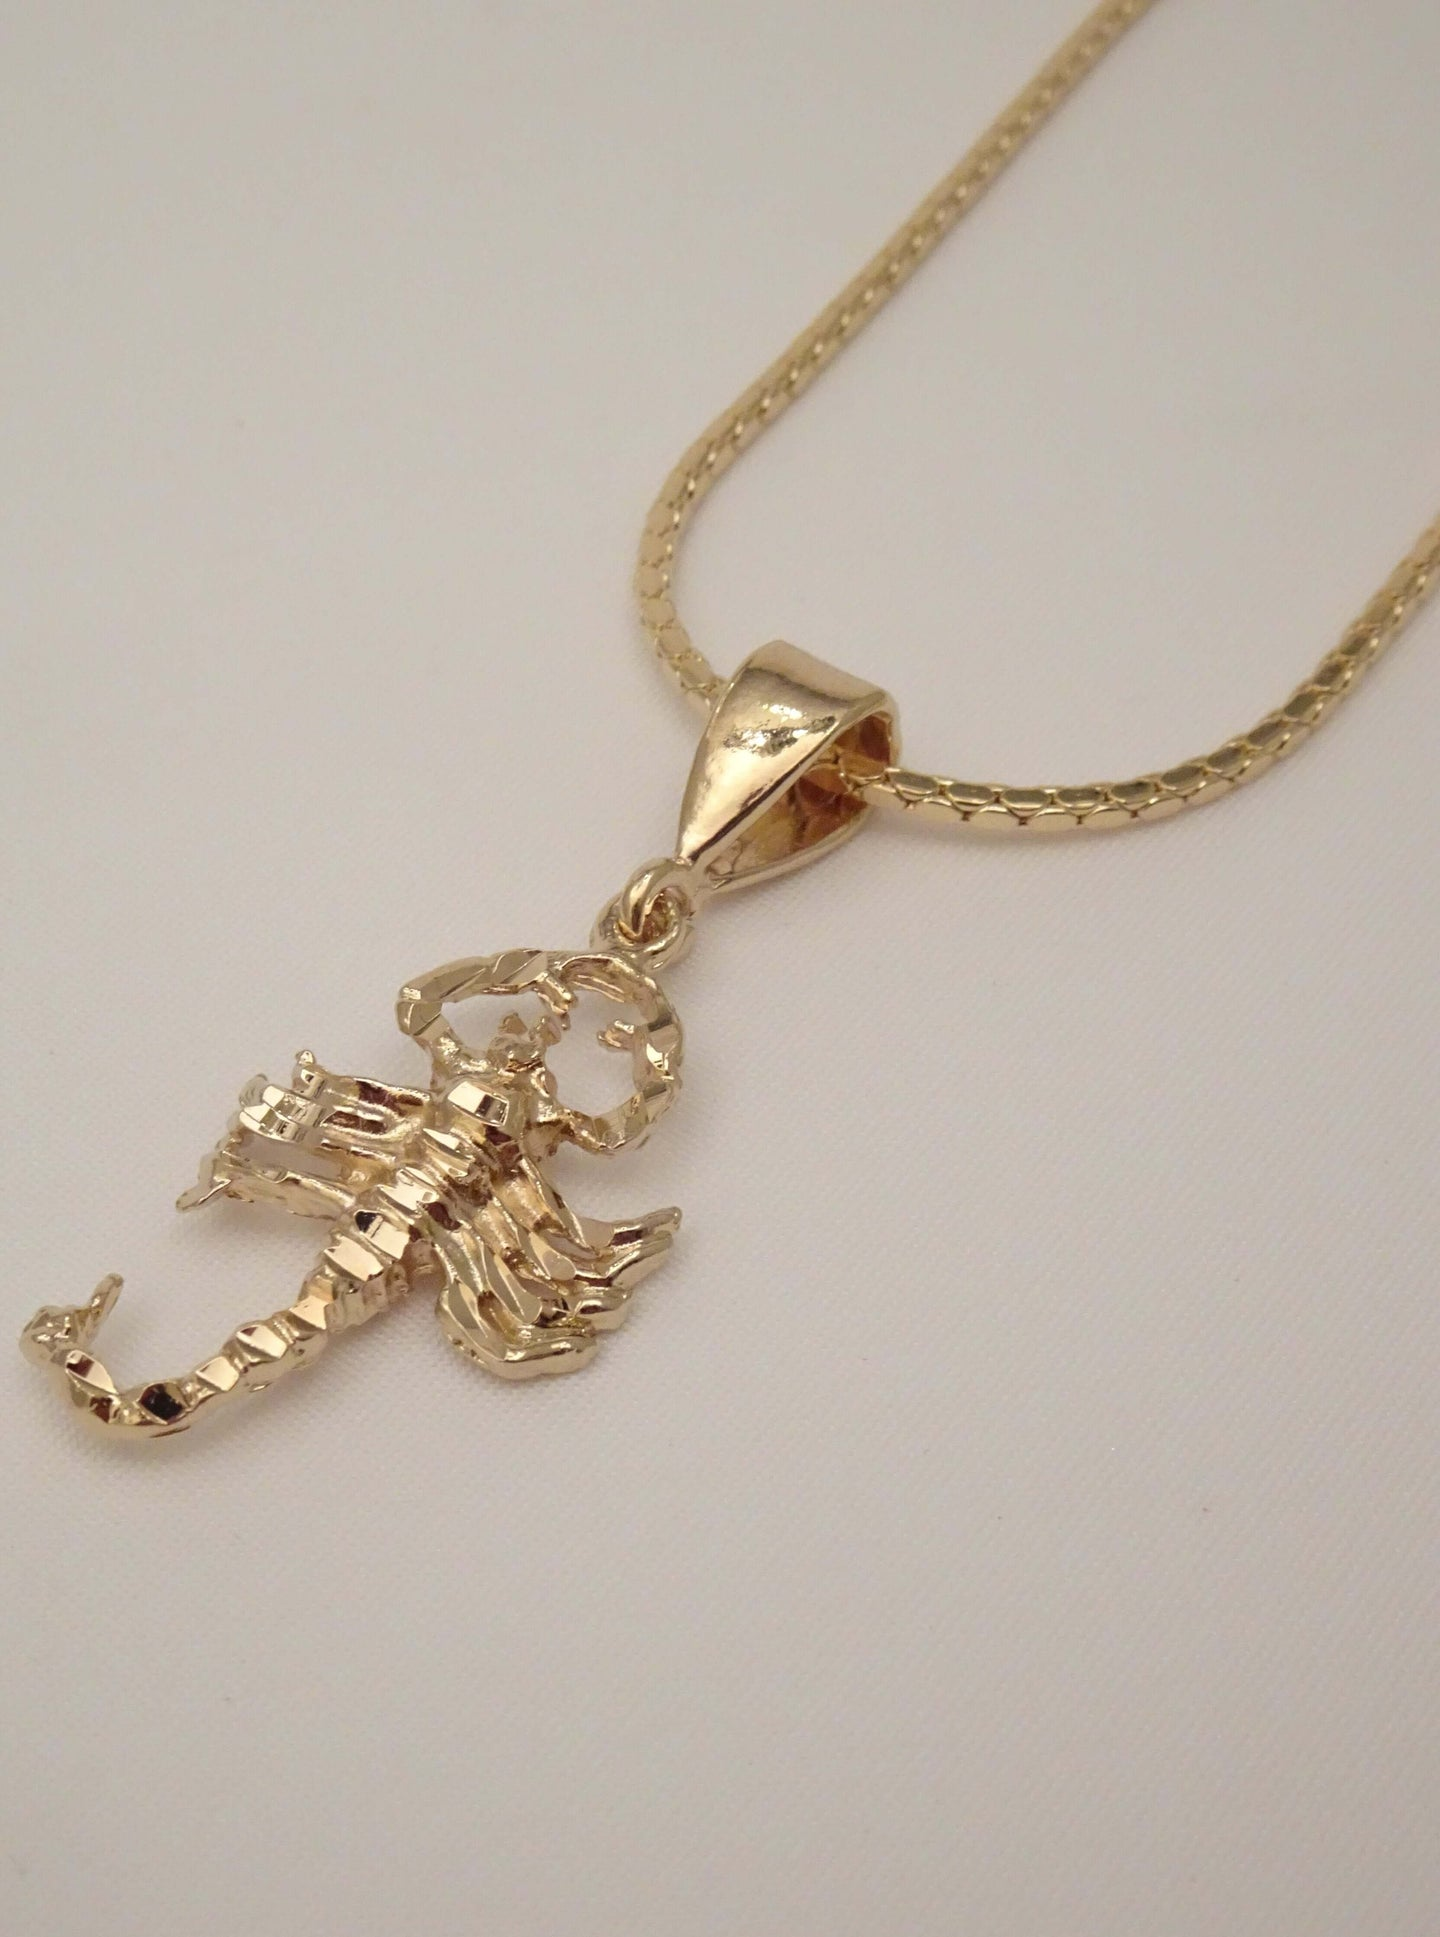 scorpion necklace, gold scorpion necklace, mens scorpion necklace, scorpion jewelry, mens hip hop jewelry, coop necklaces for guys, guy necklaces, mens necklaces, mens fashion necklace, cool necklaces, biker jewelry, american jewelry